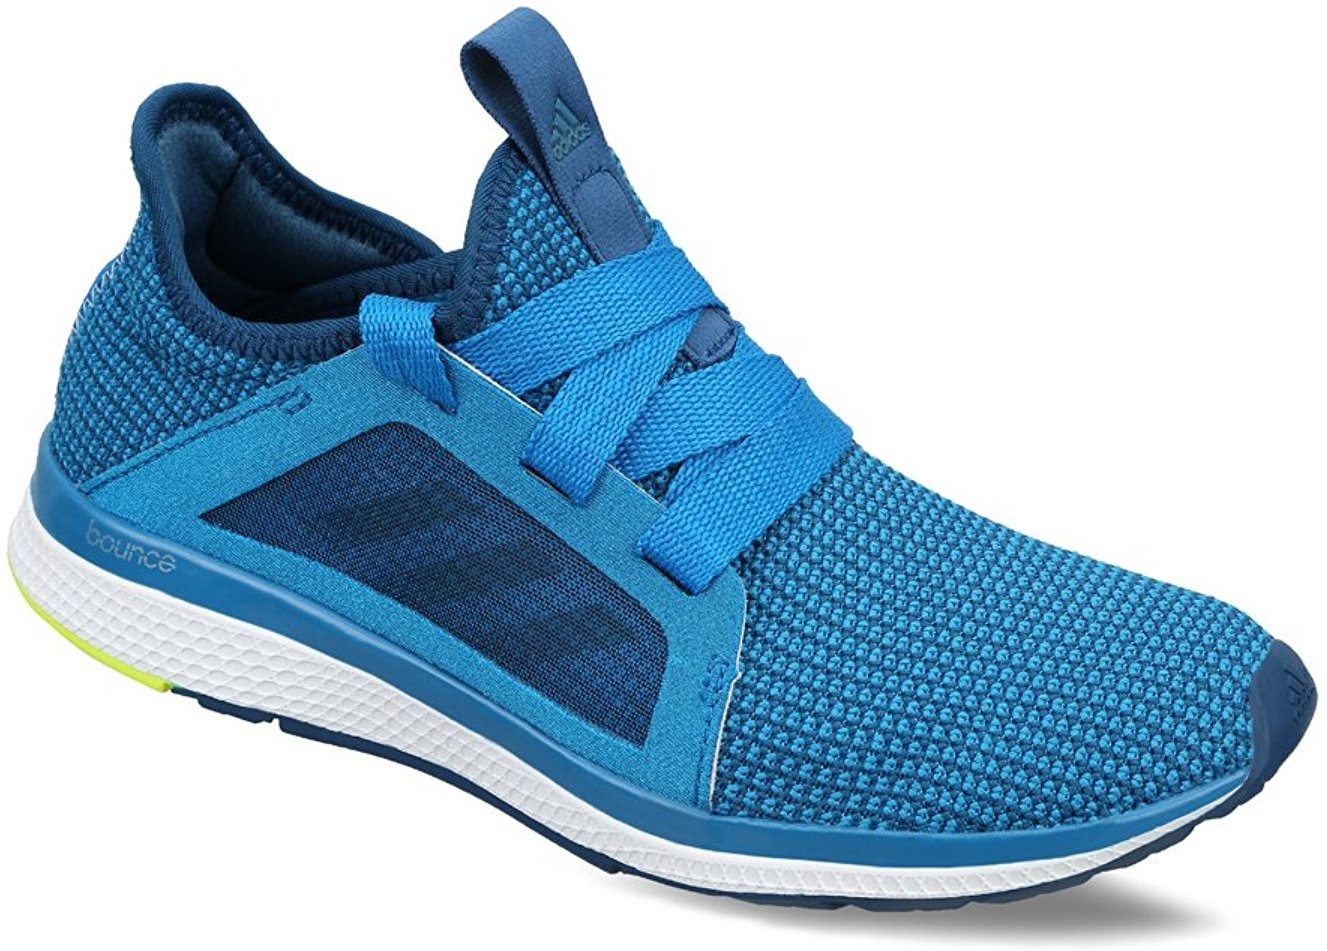 Adidas EDGE LUX W Running Shoes(Blue)